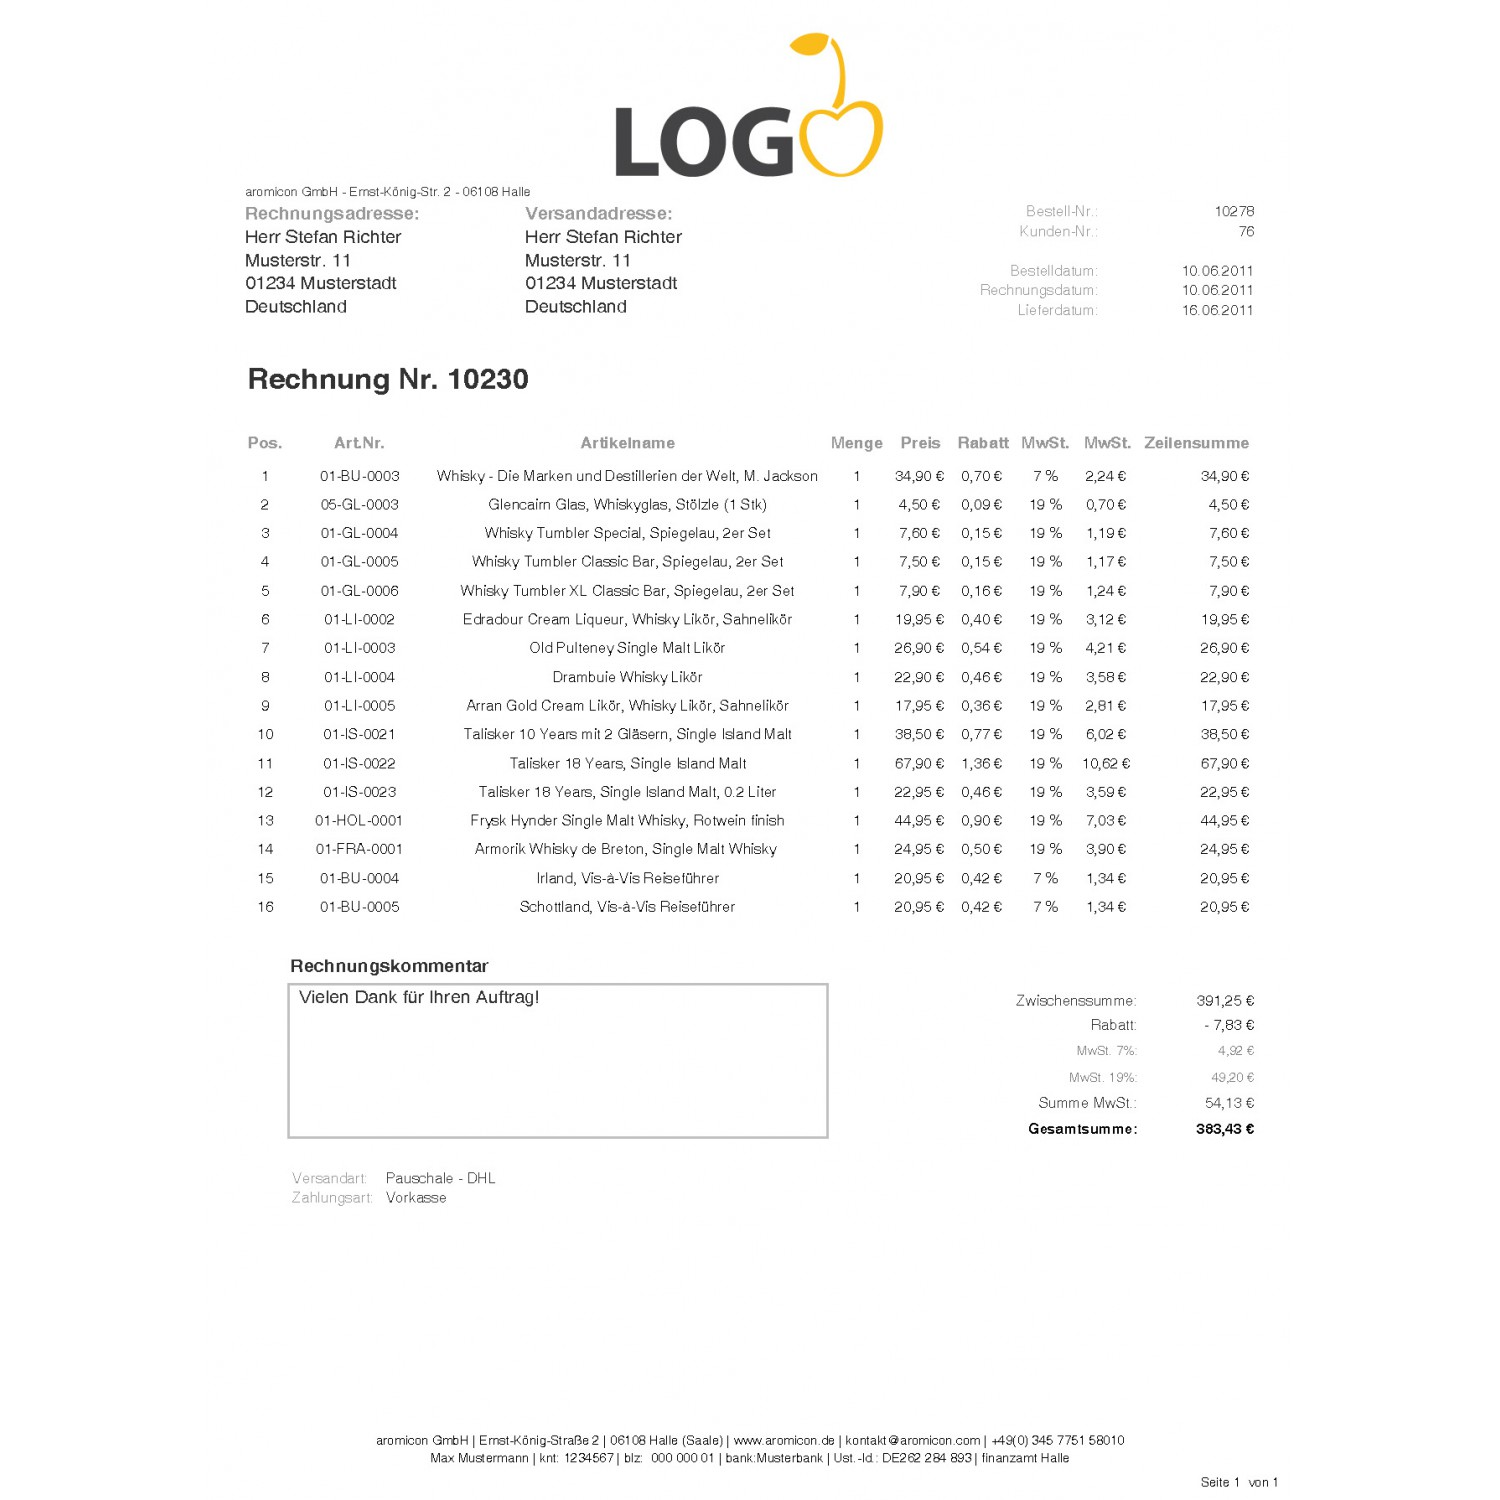 Official Receipt Maker Pdf Download German Invoice Template Word  Rabitahnet Lasagna Receipt Pdf with Apps For Invoicing Word Invoice Pdf Pro  Standard Invoice Template German  Aromicon Simple  Invoice Credit Note Invoice